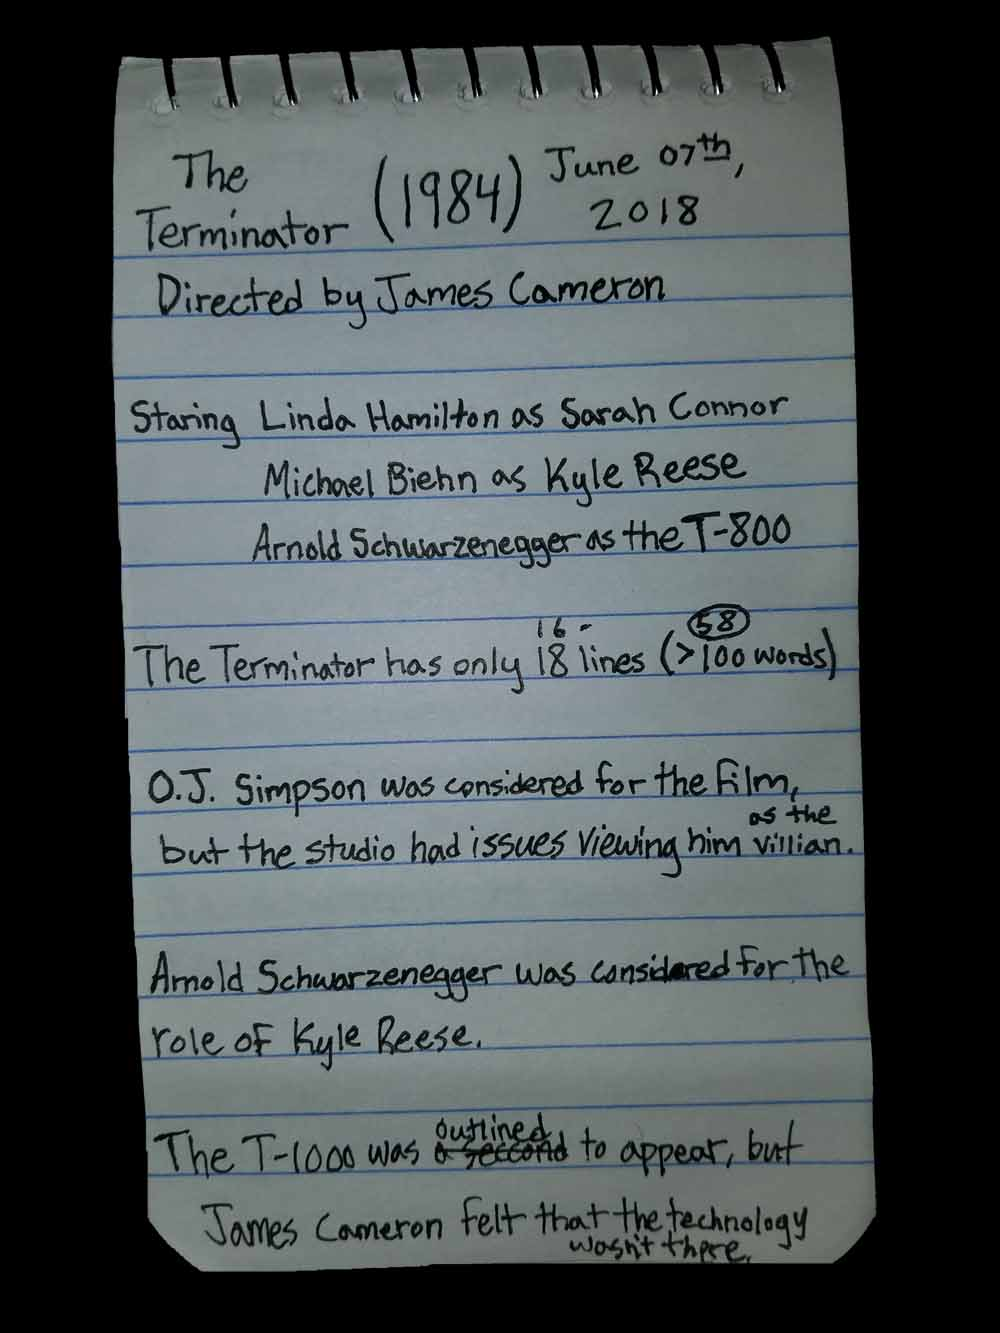 The Terminator Film Notes, Trivia, Bagrisham, Brandon Grisham